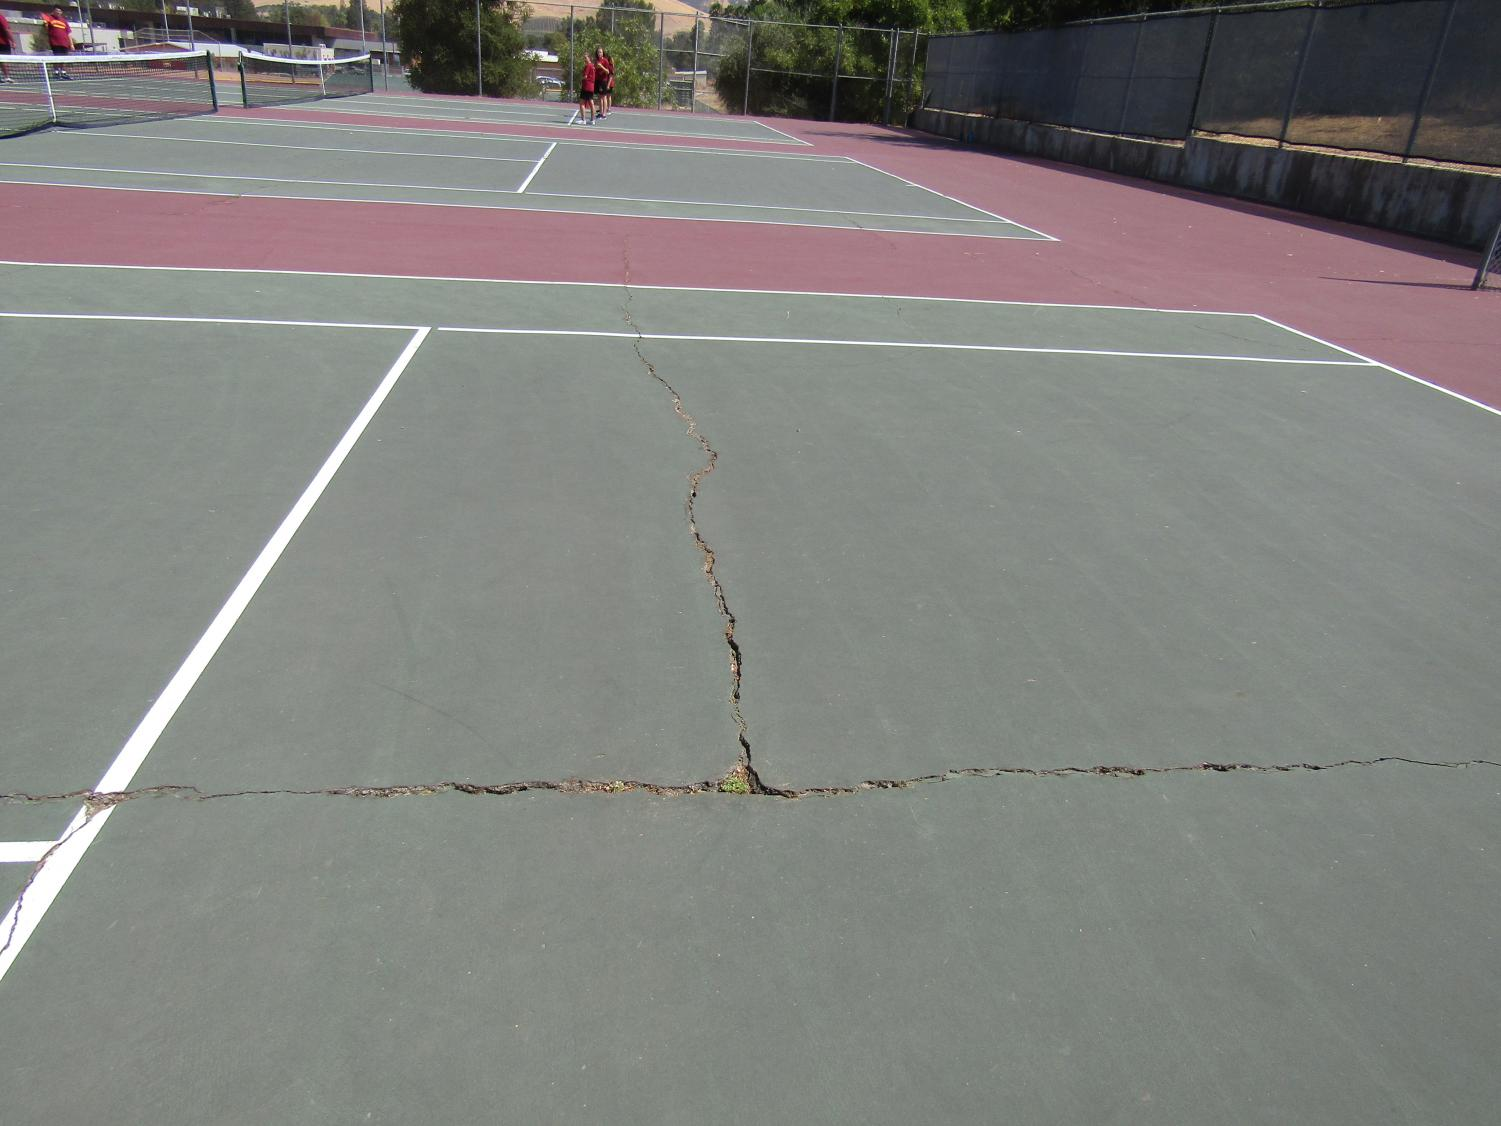 Northgate tennis courts are in need of repairs, which are expected to take place this spring.